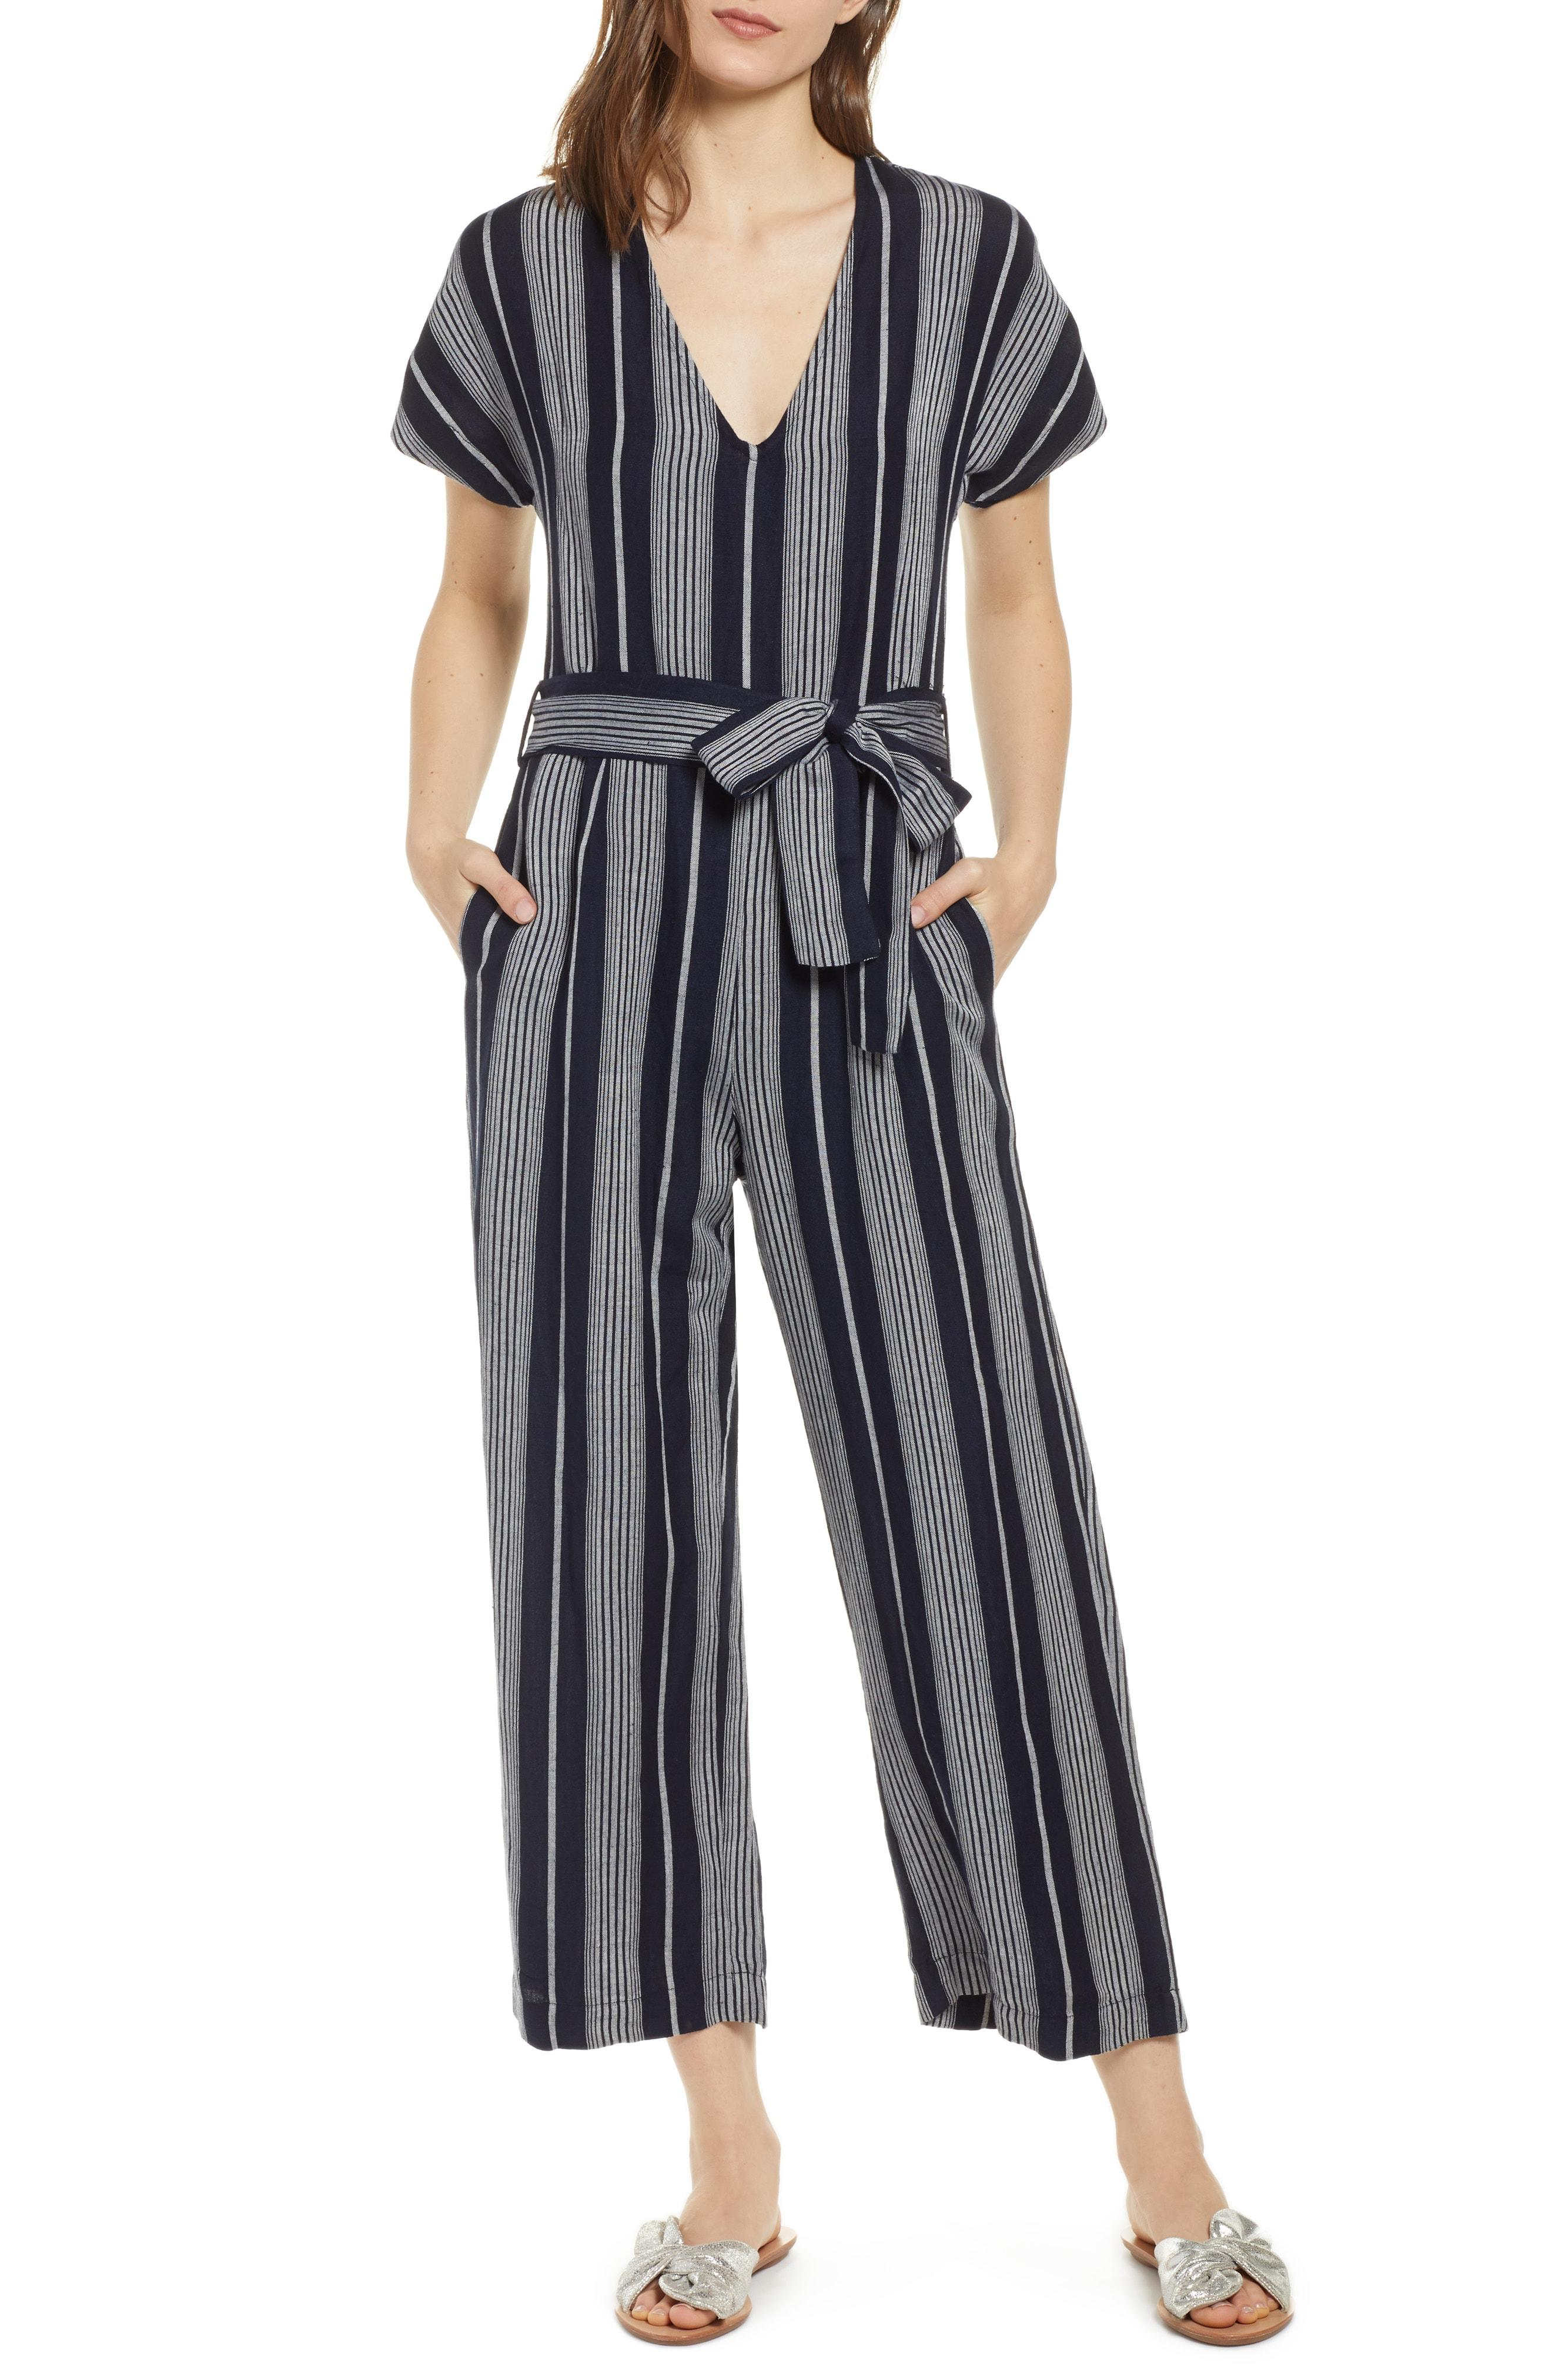 1711c8a7028 Lyst - Rails Angela Stripe Jumpsuit in Black